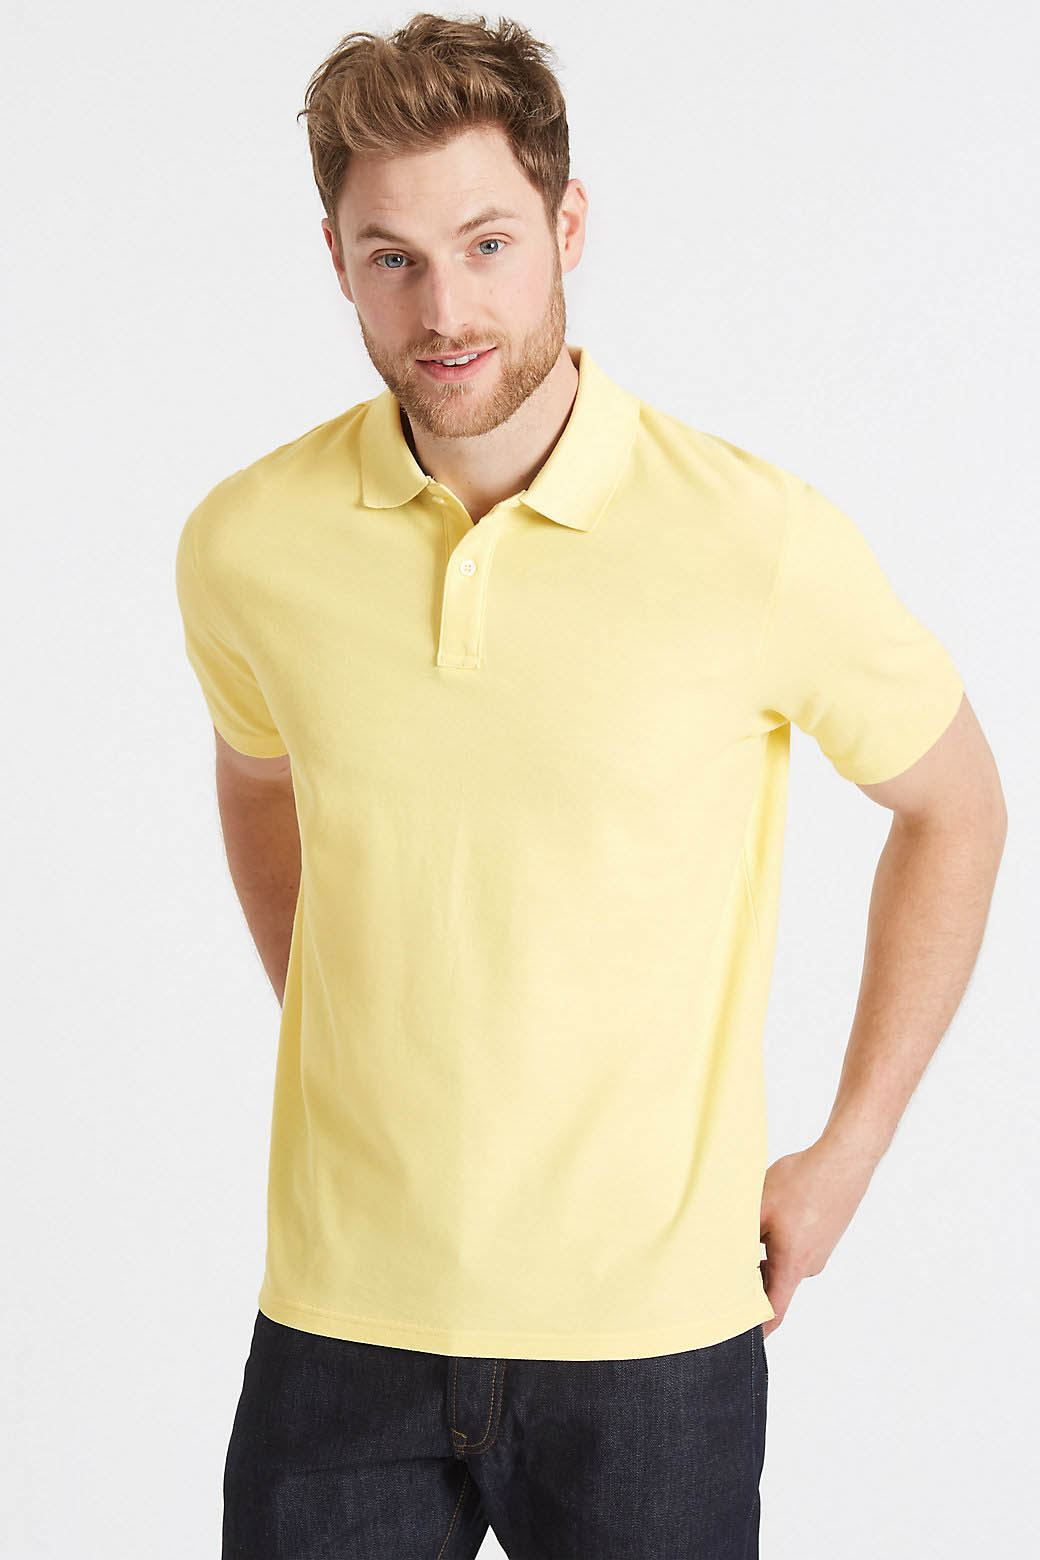 MARKS-amp-SPENCER-Mens-Classic-Cotton-Polo-Shirt-M-amp-S-All-Colours-and-Large-Sizes thumbnail 27